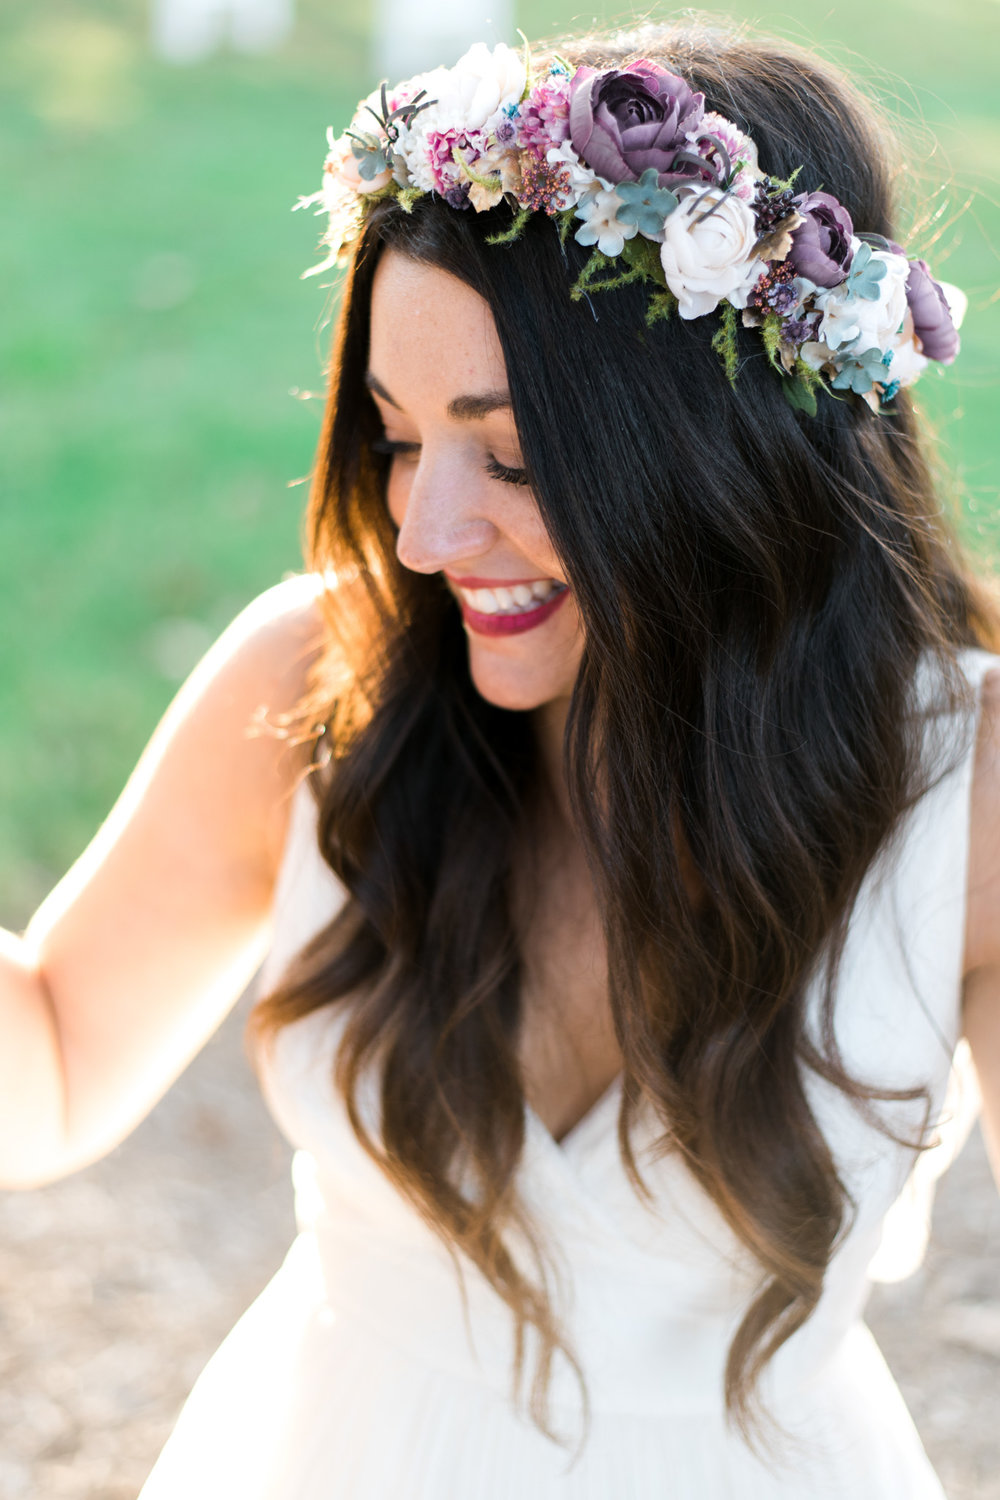 The_Trivium_Estate_Forest_VA_Wedding_Flower_Crown_boho_wedding_classic_wedding_Virginia_Wedding_photographer080.jpg